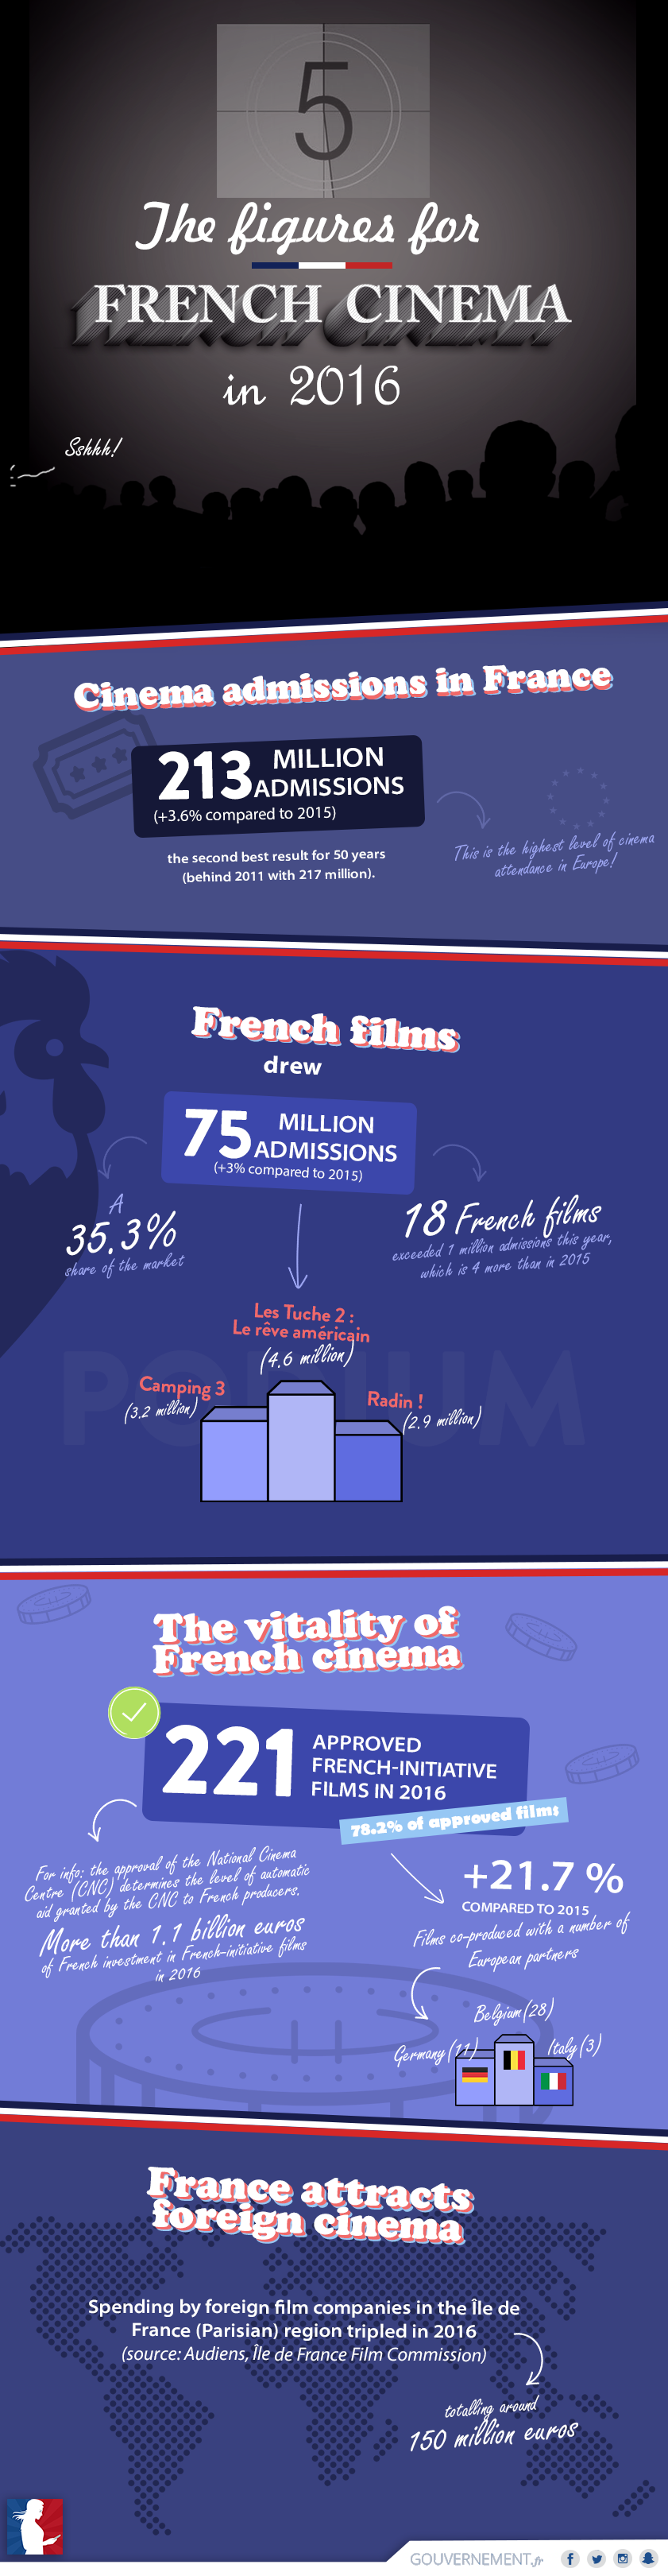 The Figures for French Cinema